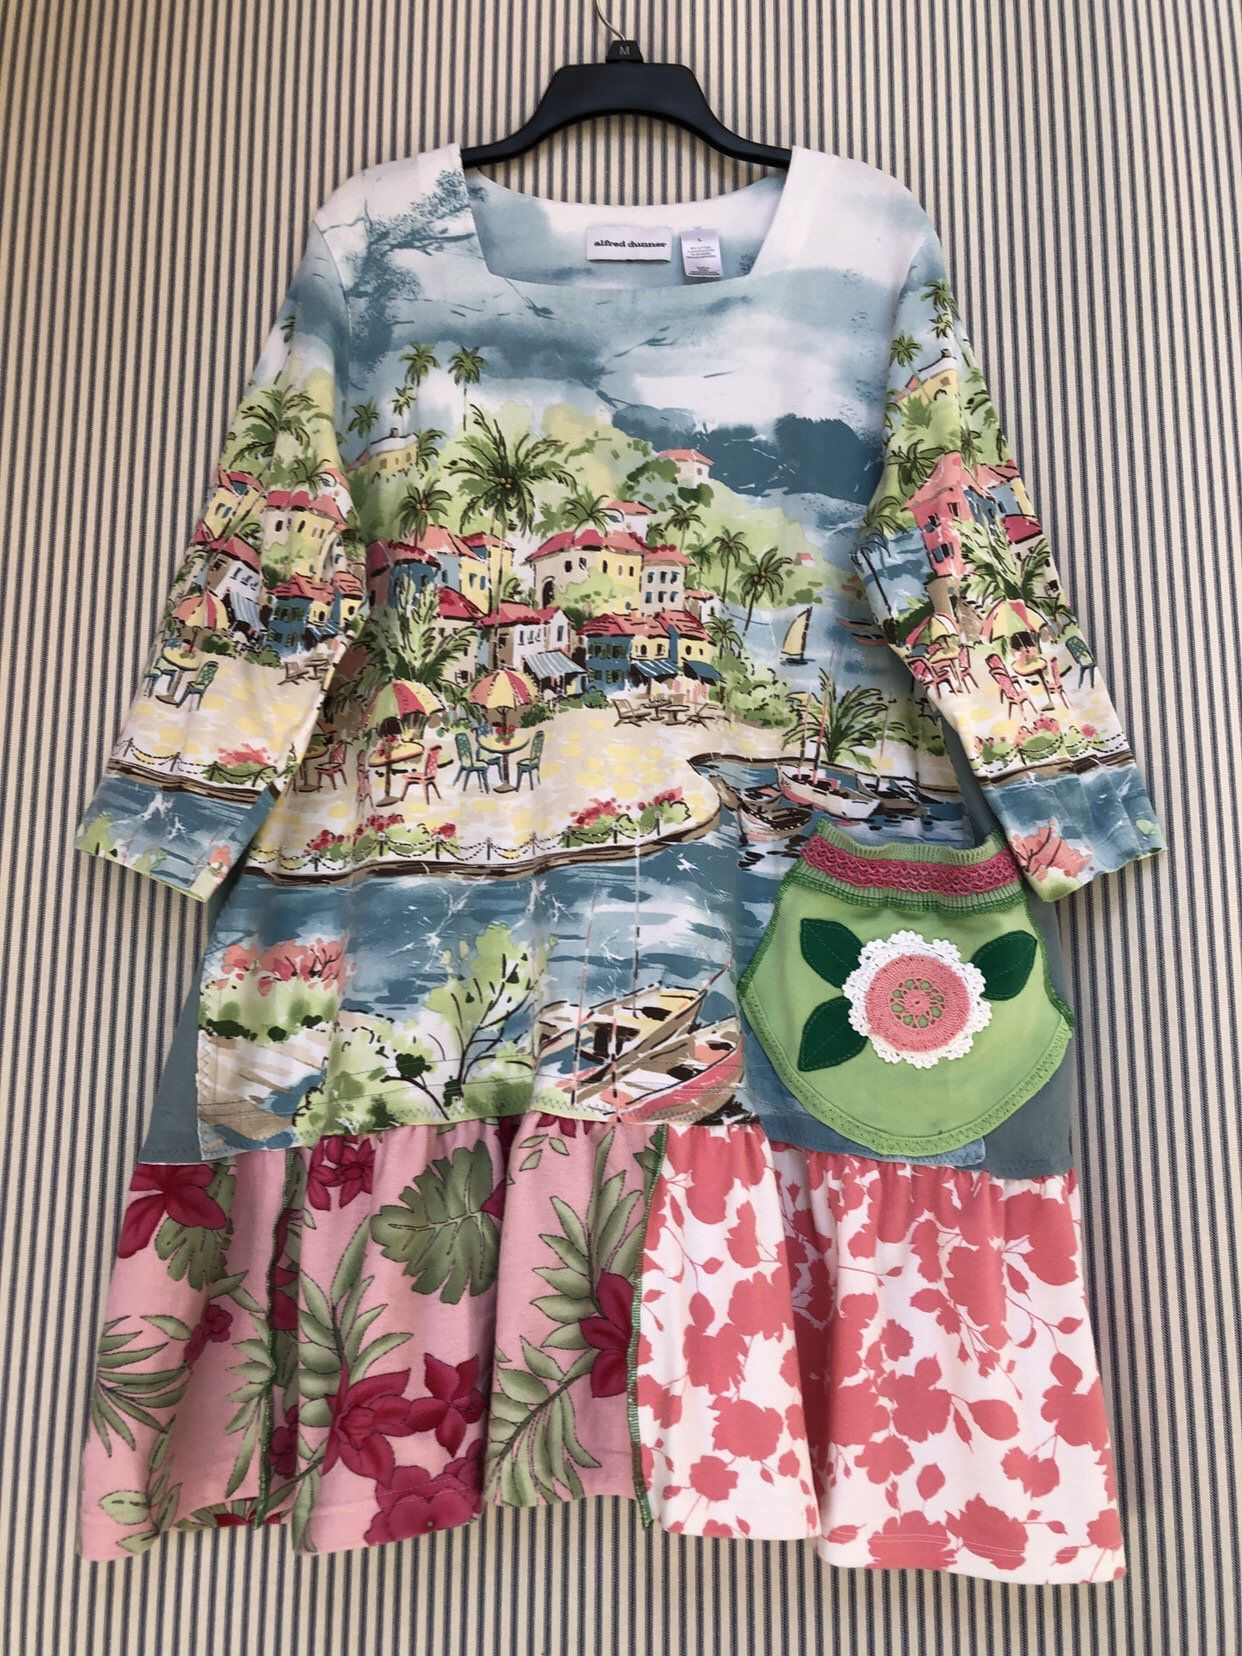 996a56244 Excited to share this item from my #etsy shop: Upcycled Tropical Tunic Top,  Artsy Cityscape Floral Print Art Top, XL #clothing #women